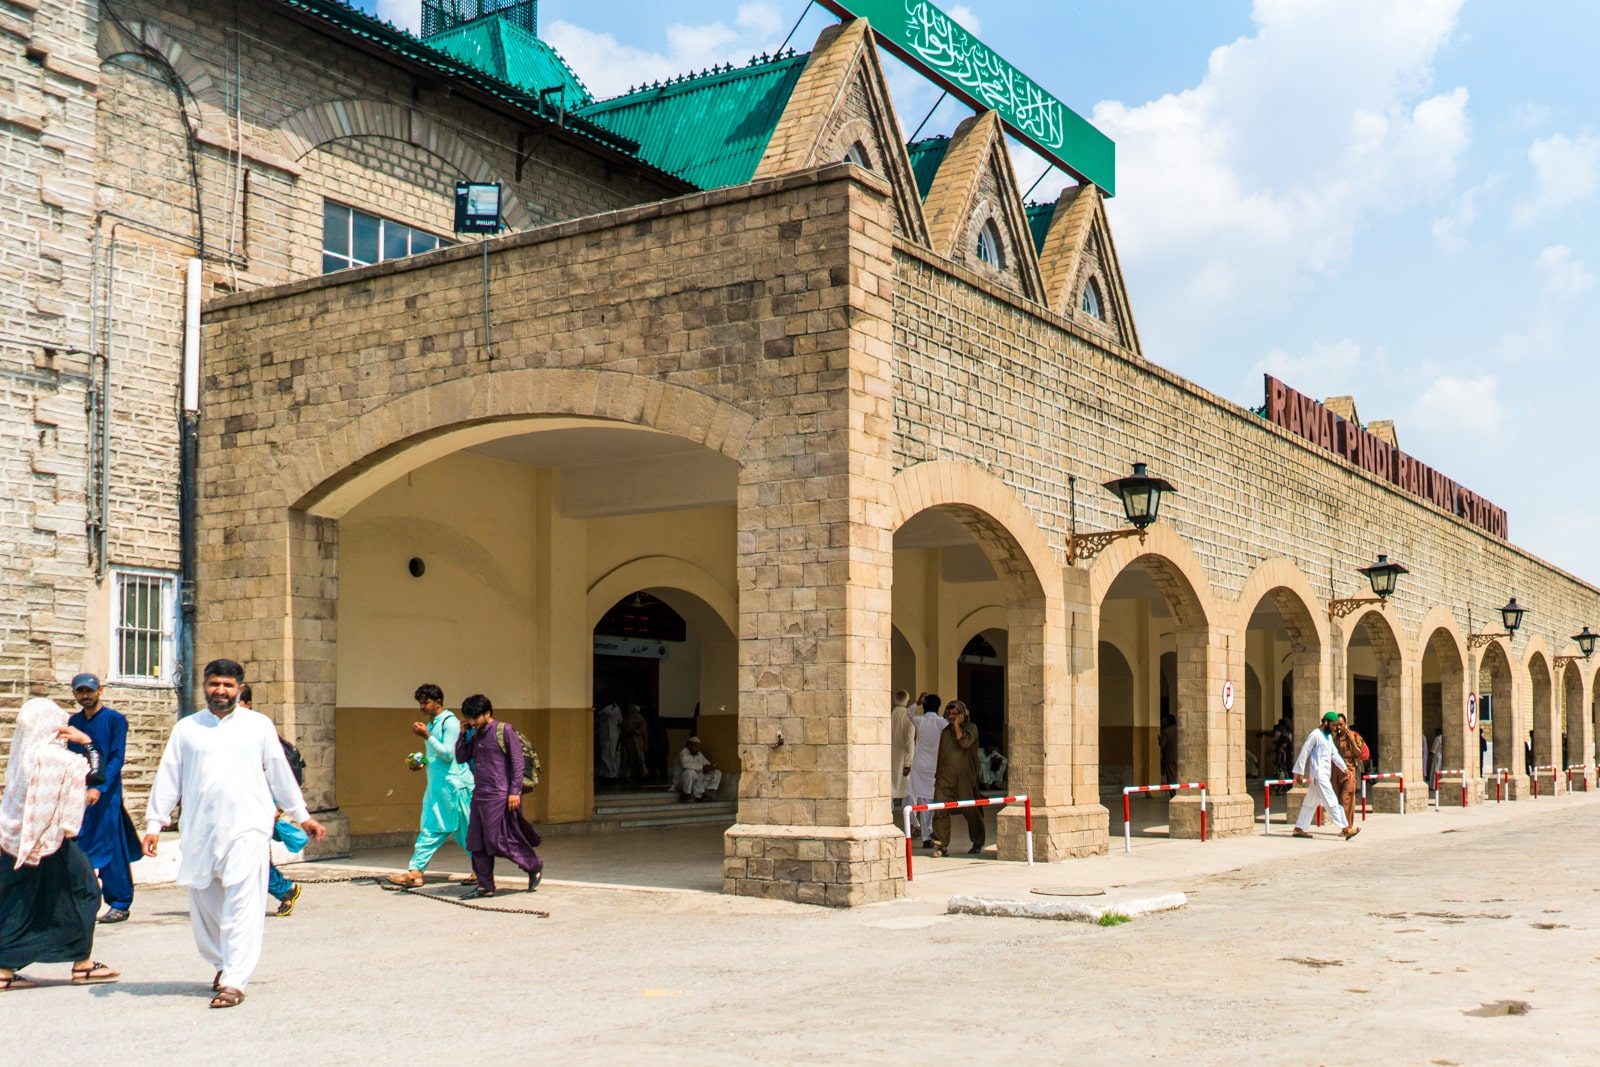 How to get a foreigner discount on train travel in Pakistan - Rawalpindi railway station - Lost With Purpose travel blog